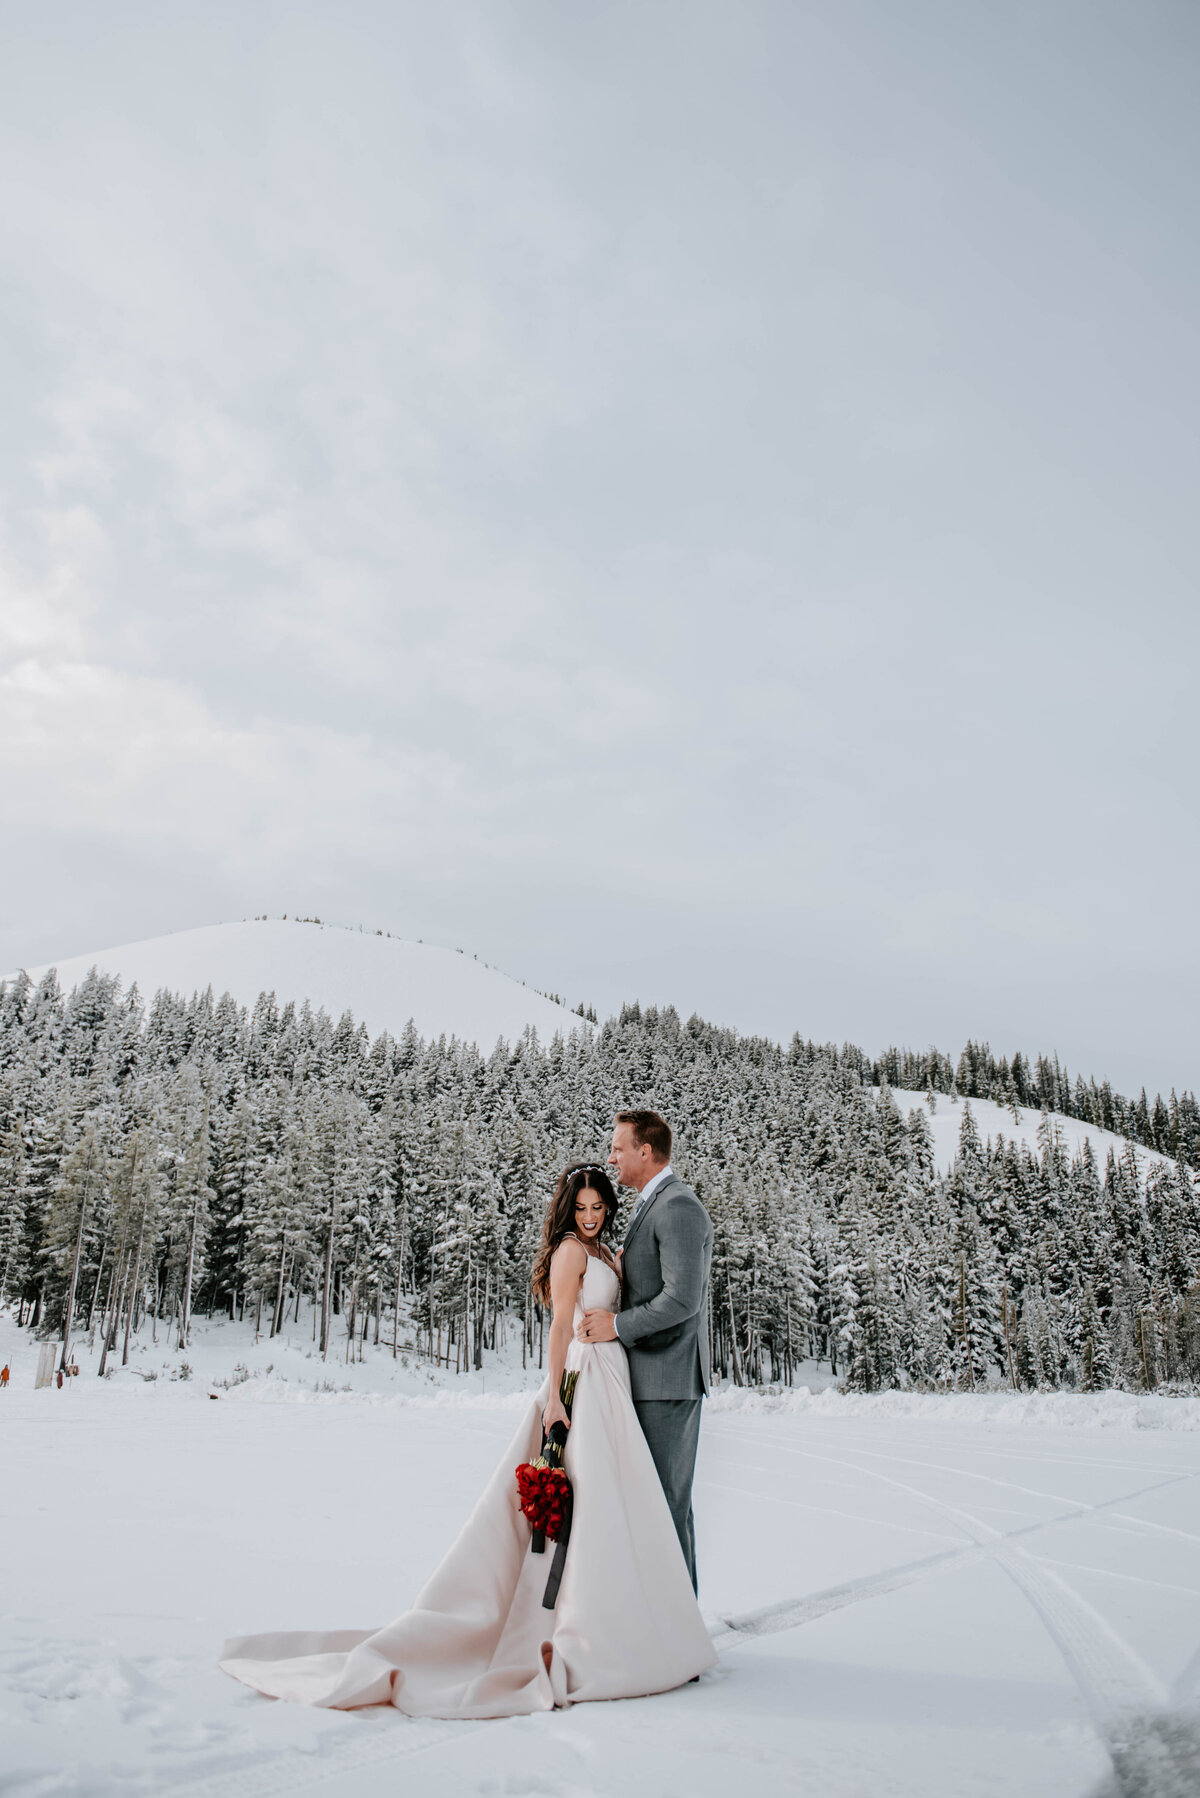 mt-bachelor-snow-winter-elopement-bend-oregon-wedding-photographer-2158